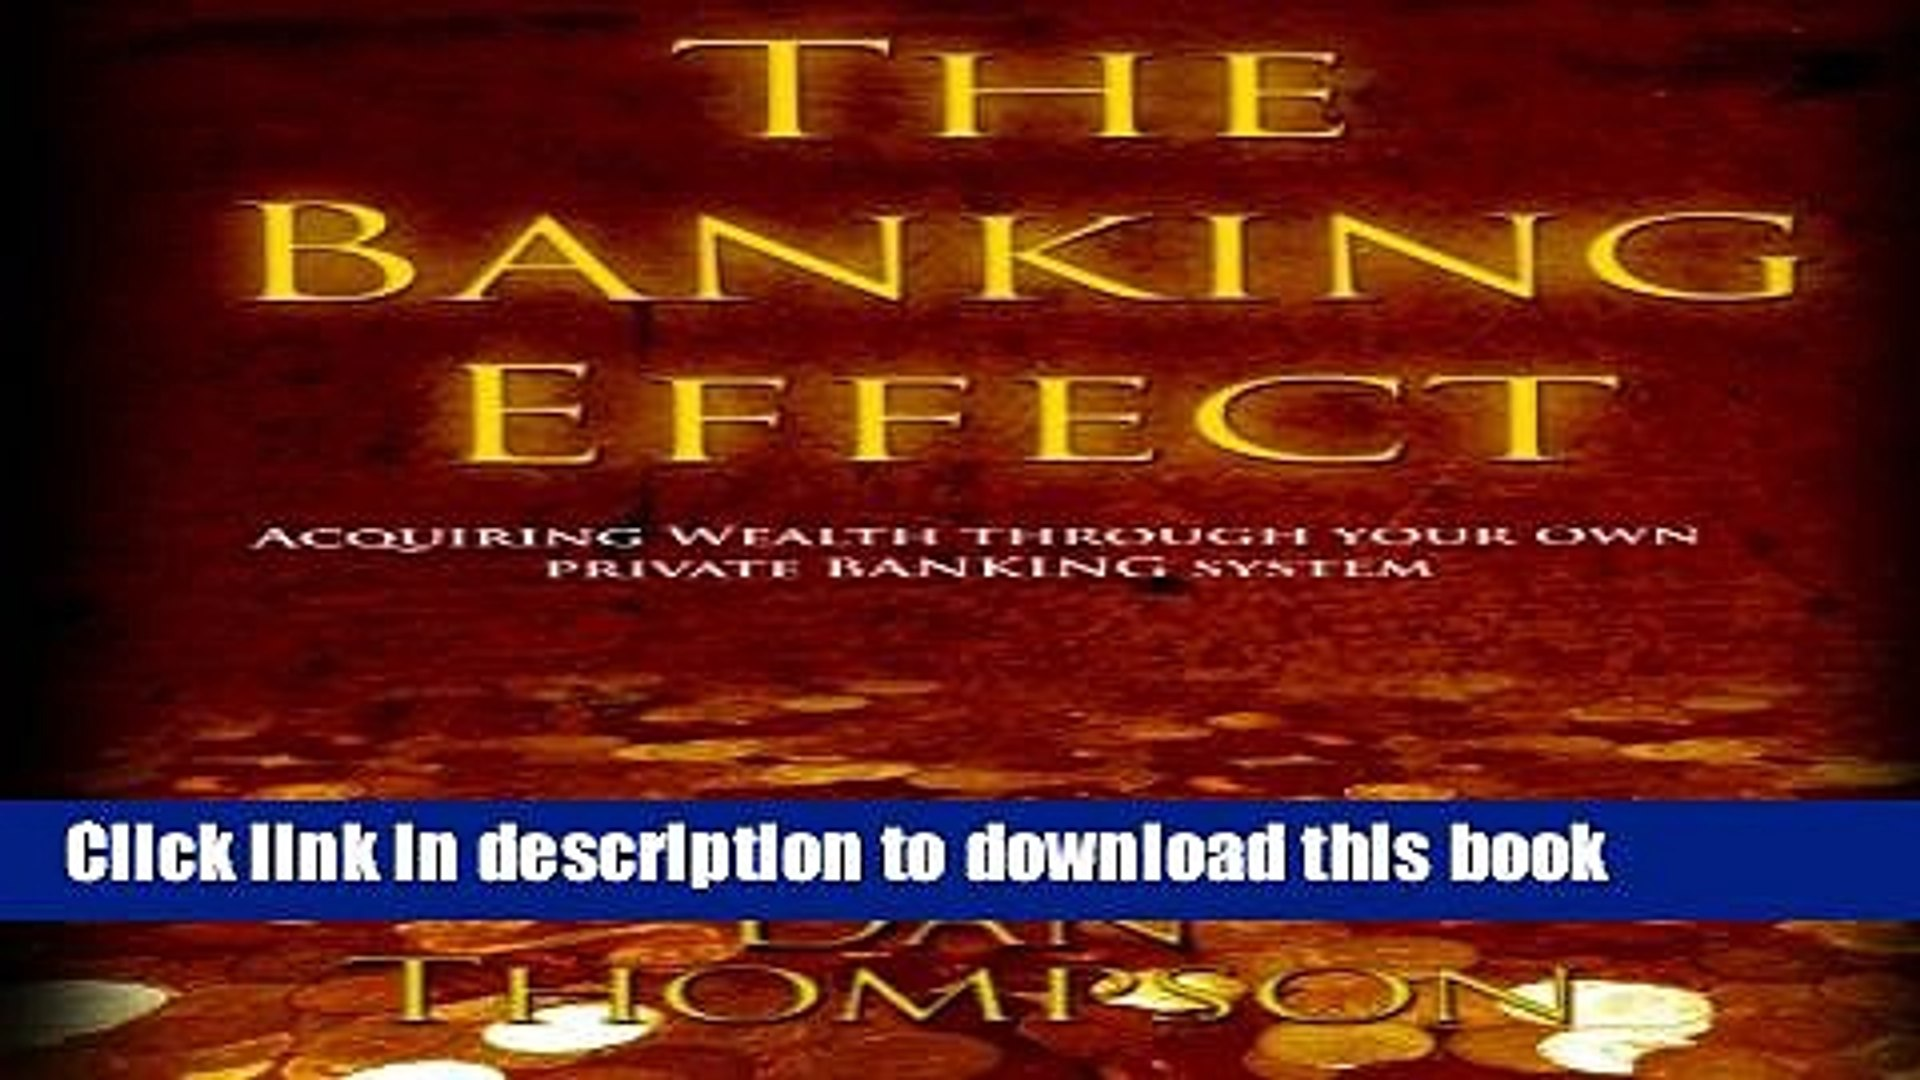 Download Books The Banking Effect: Acquiring wealth through your own Private Banking System.